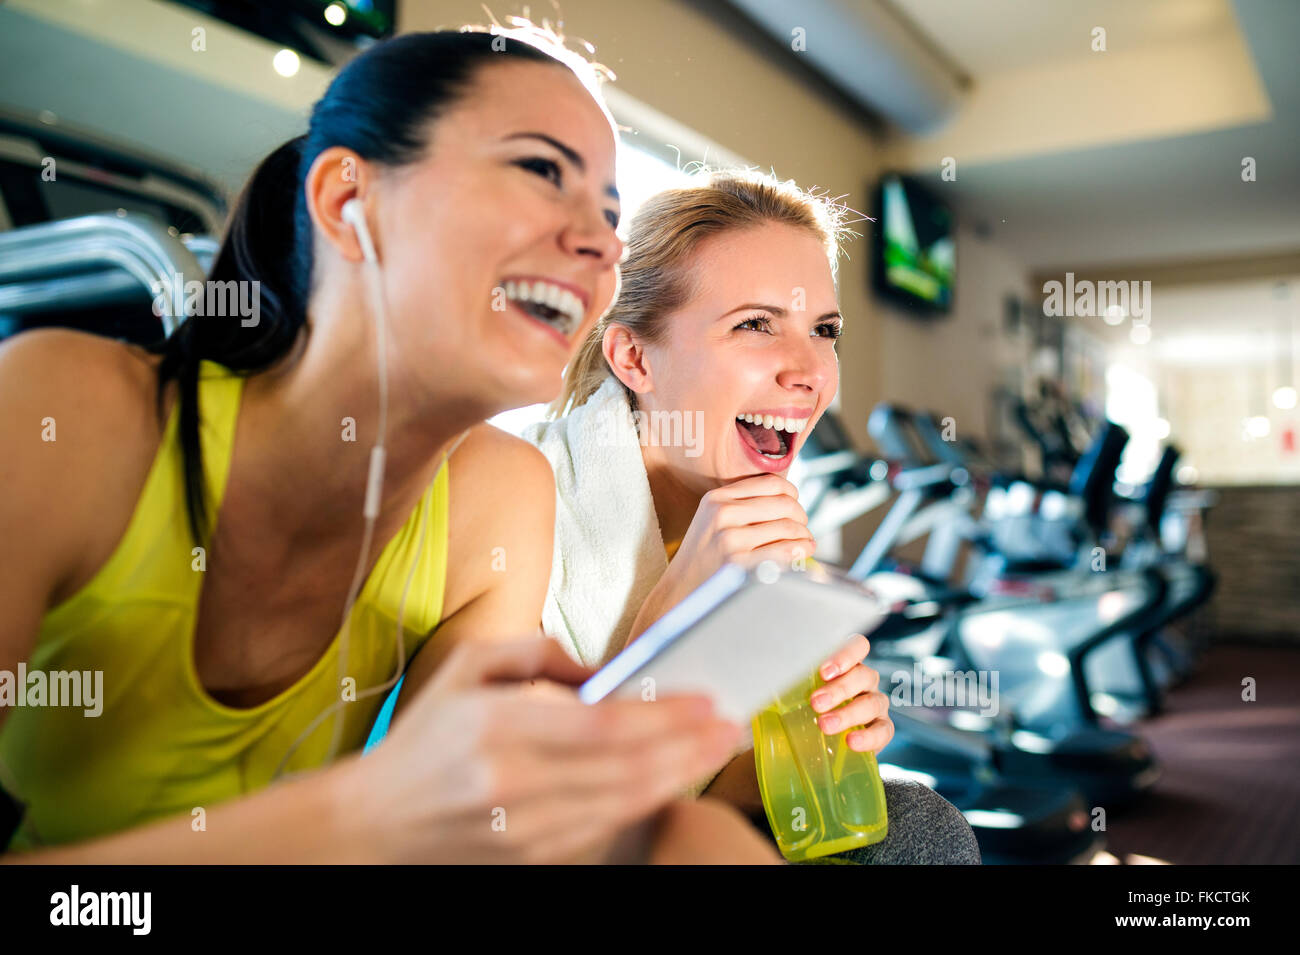 Attractive fit women in gym with smart phone laughing - Stock Image